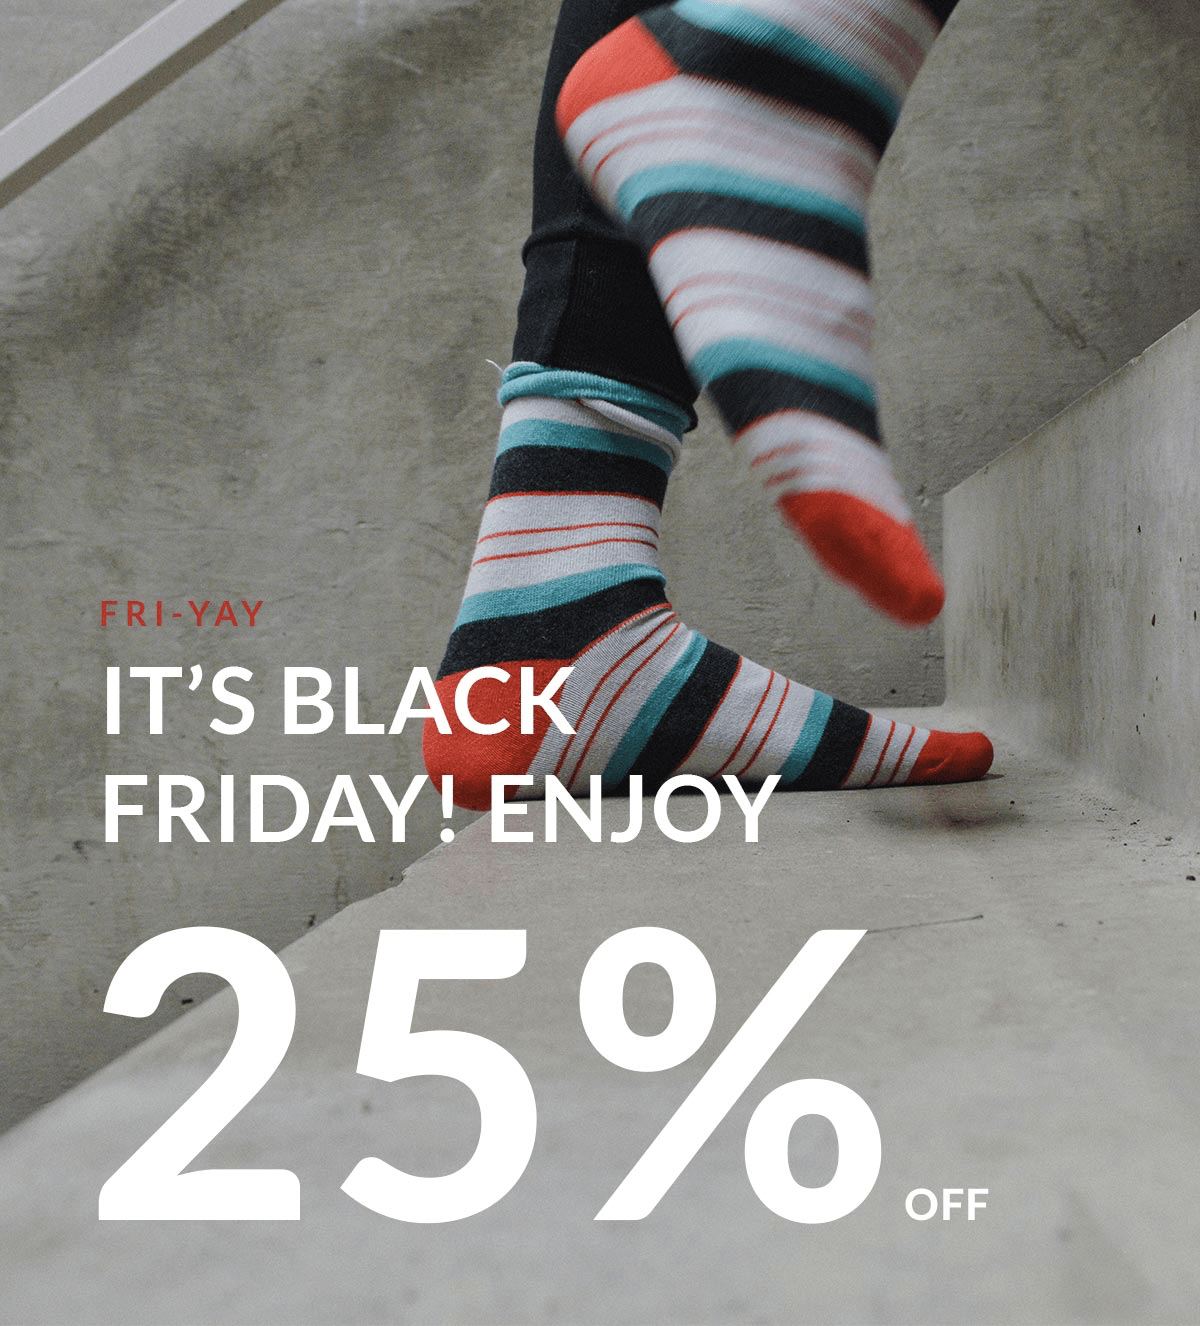 Urban Drawer Black Friday Deal: Get 20% off your first subscription!